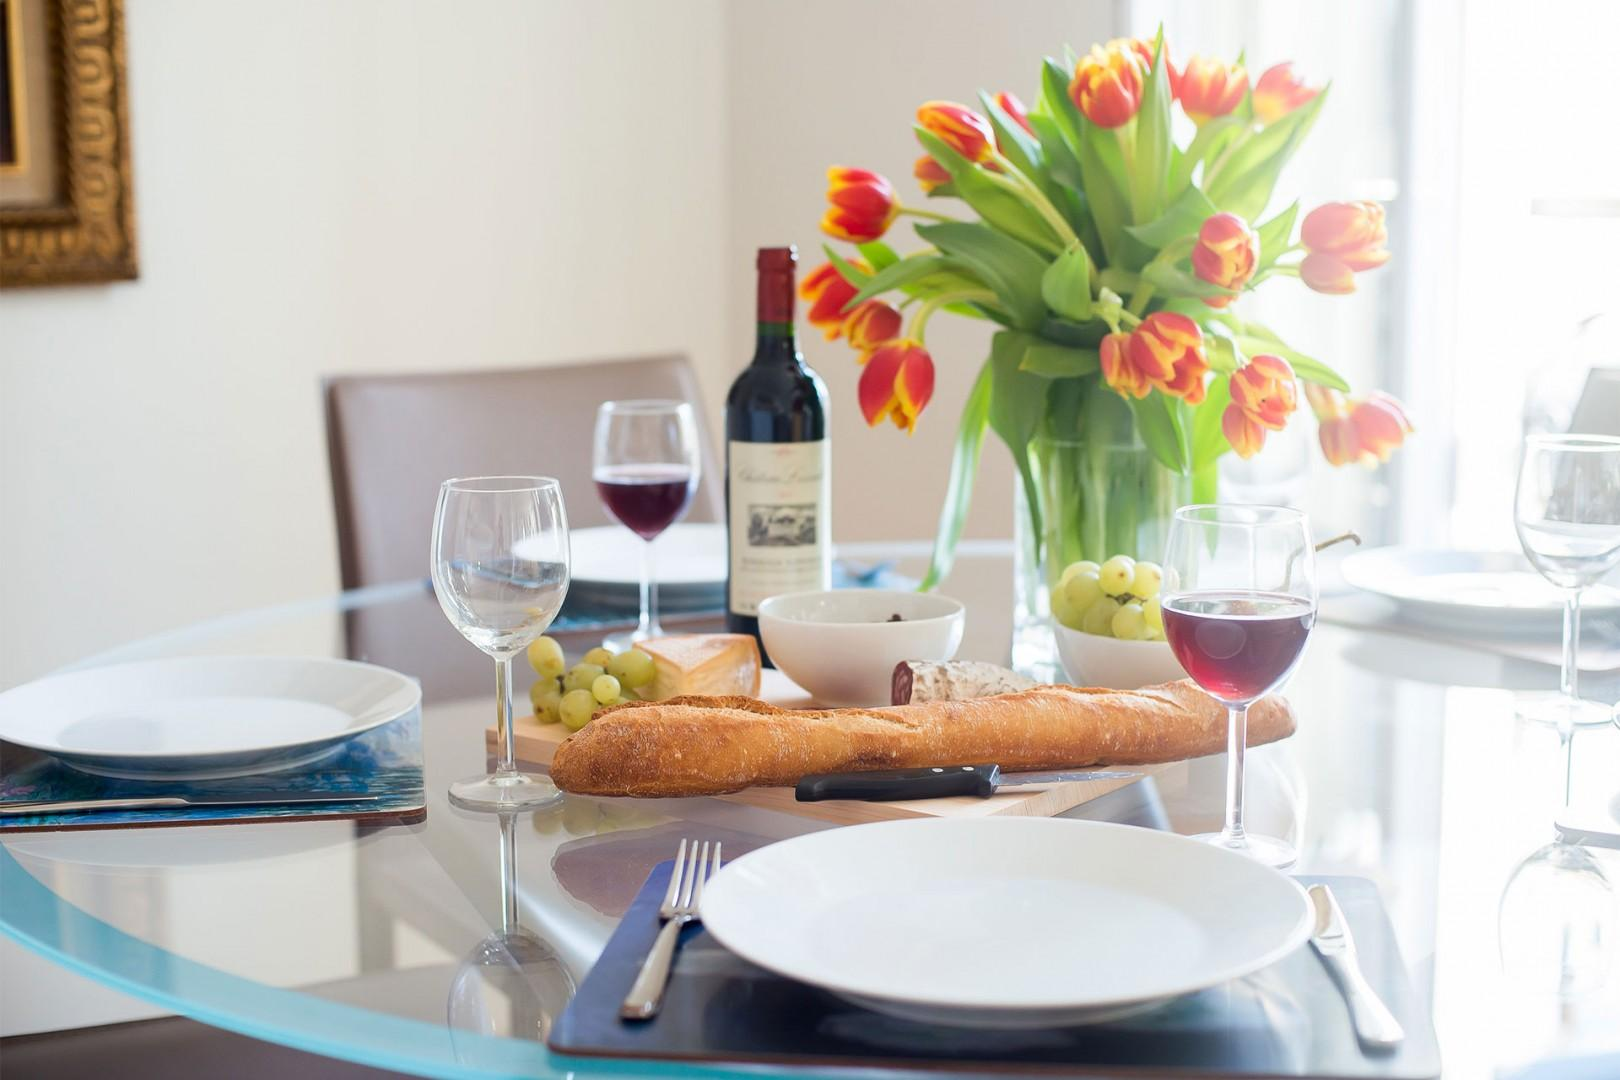 Enjoy a classic French meal made with local produce.